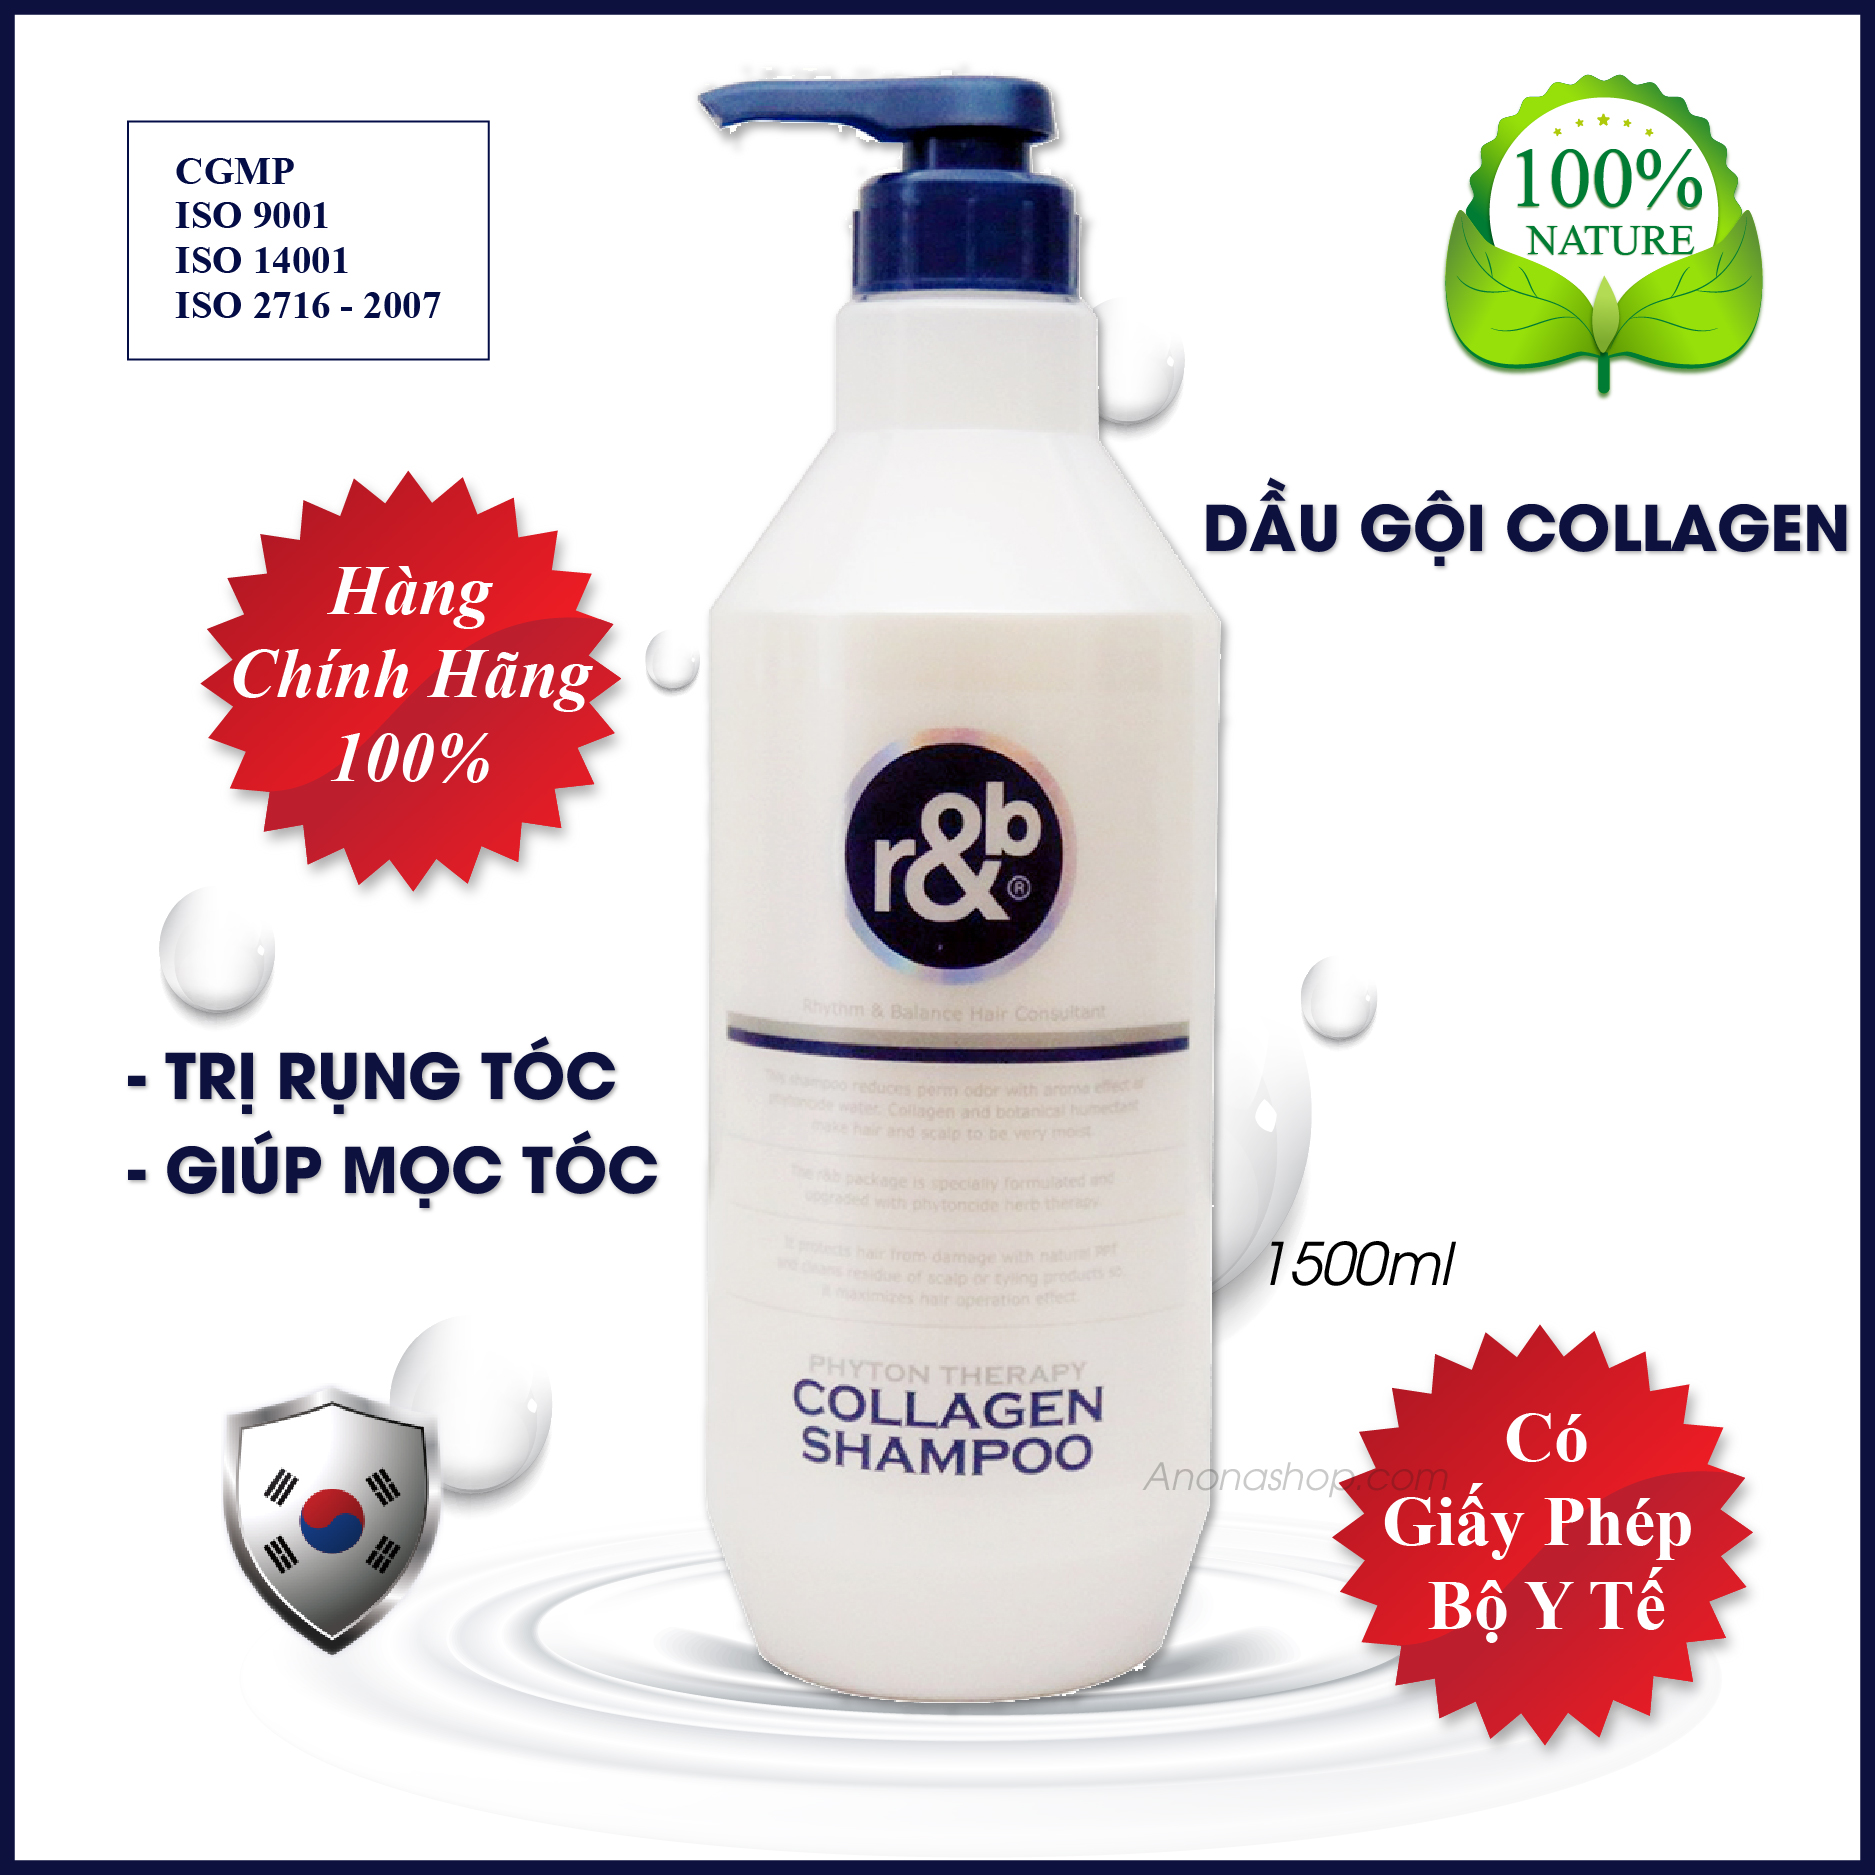 DAU GOI COLLAGEN-01